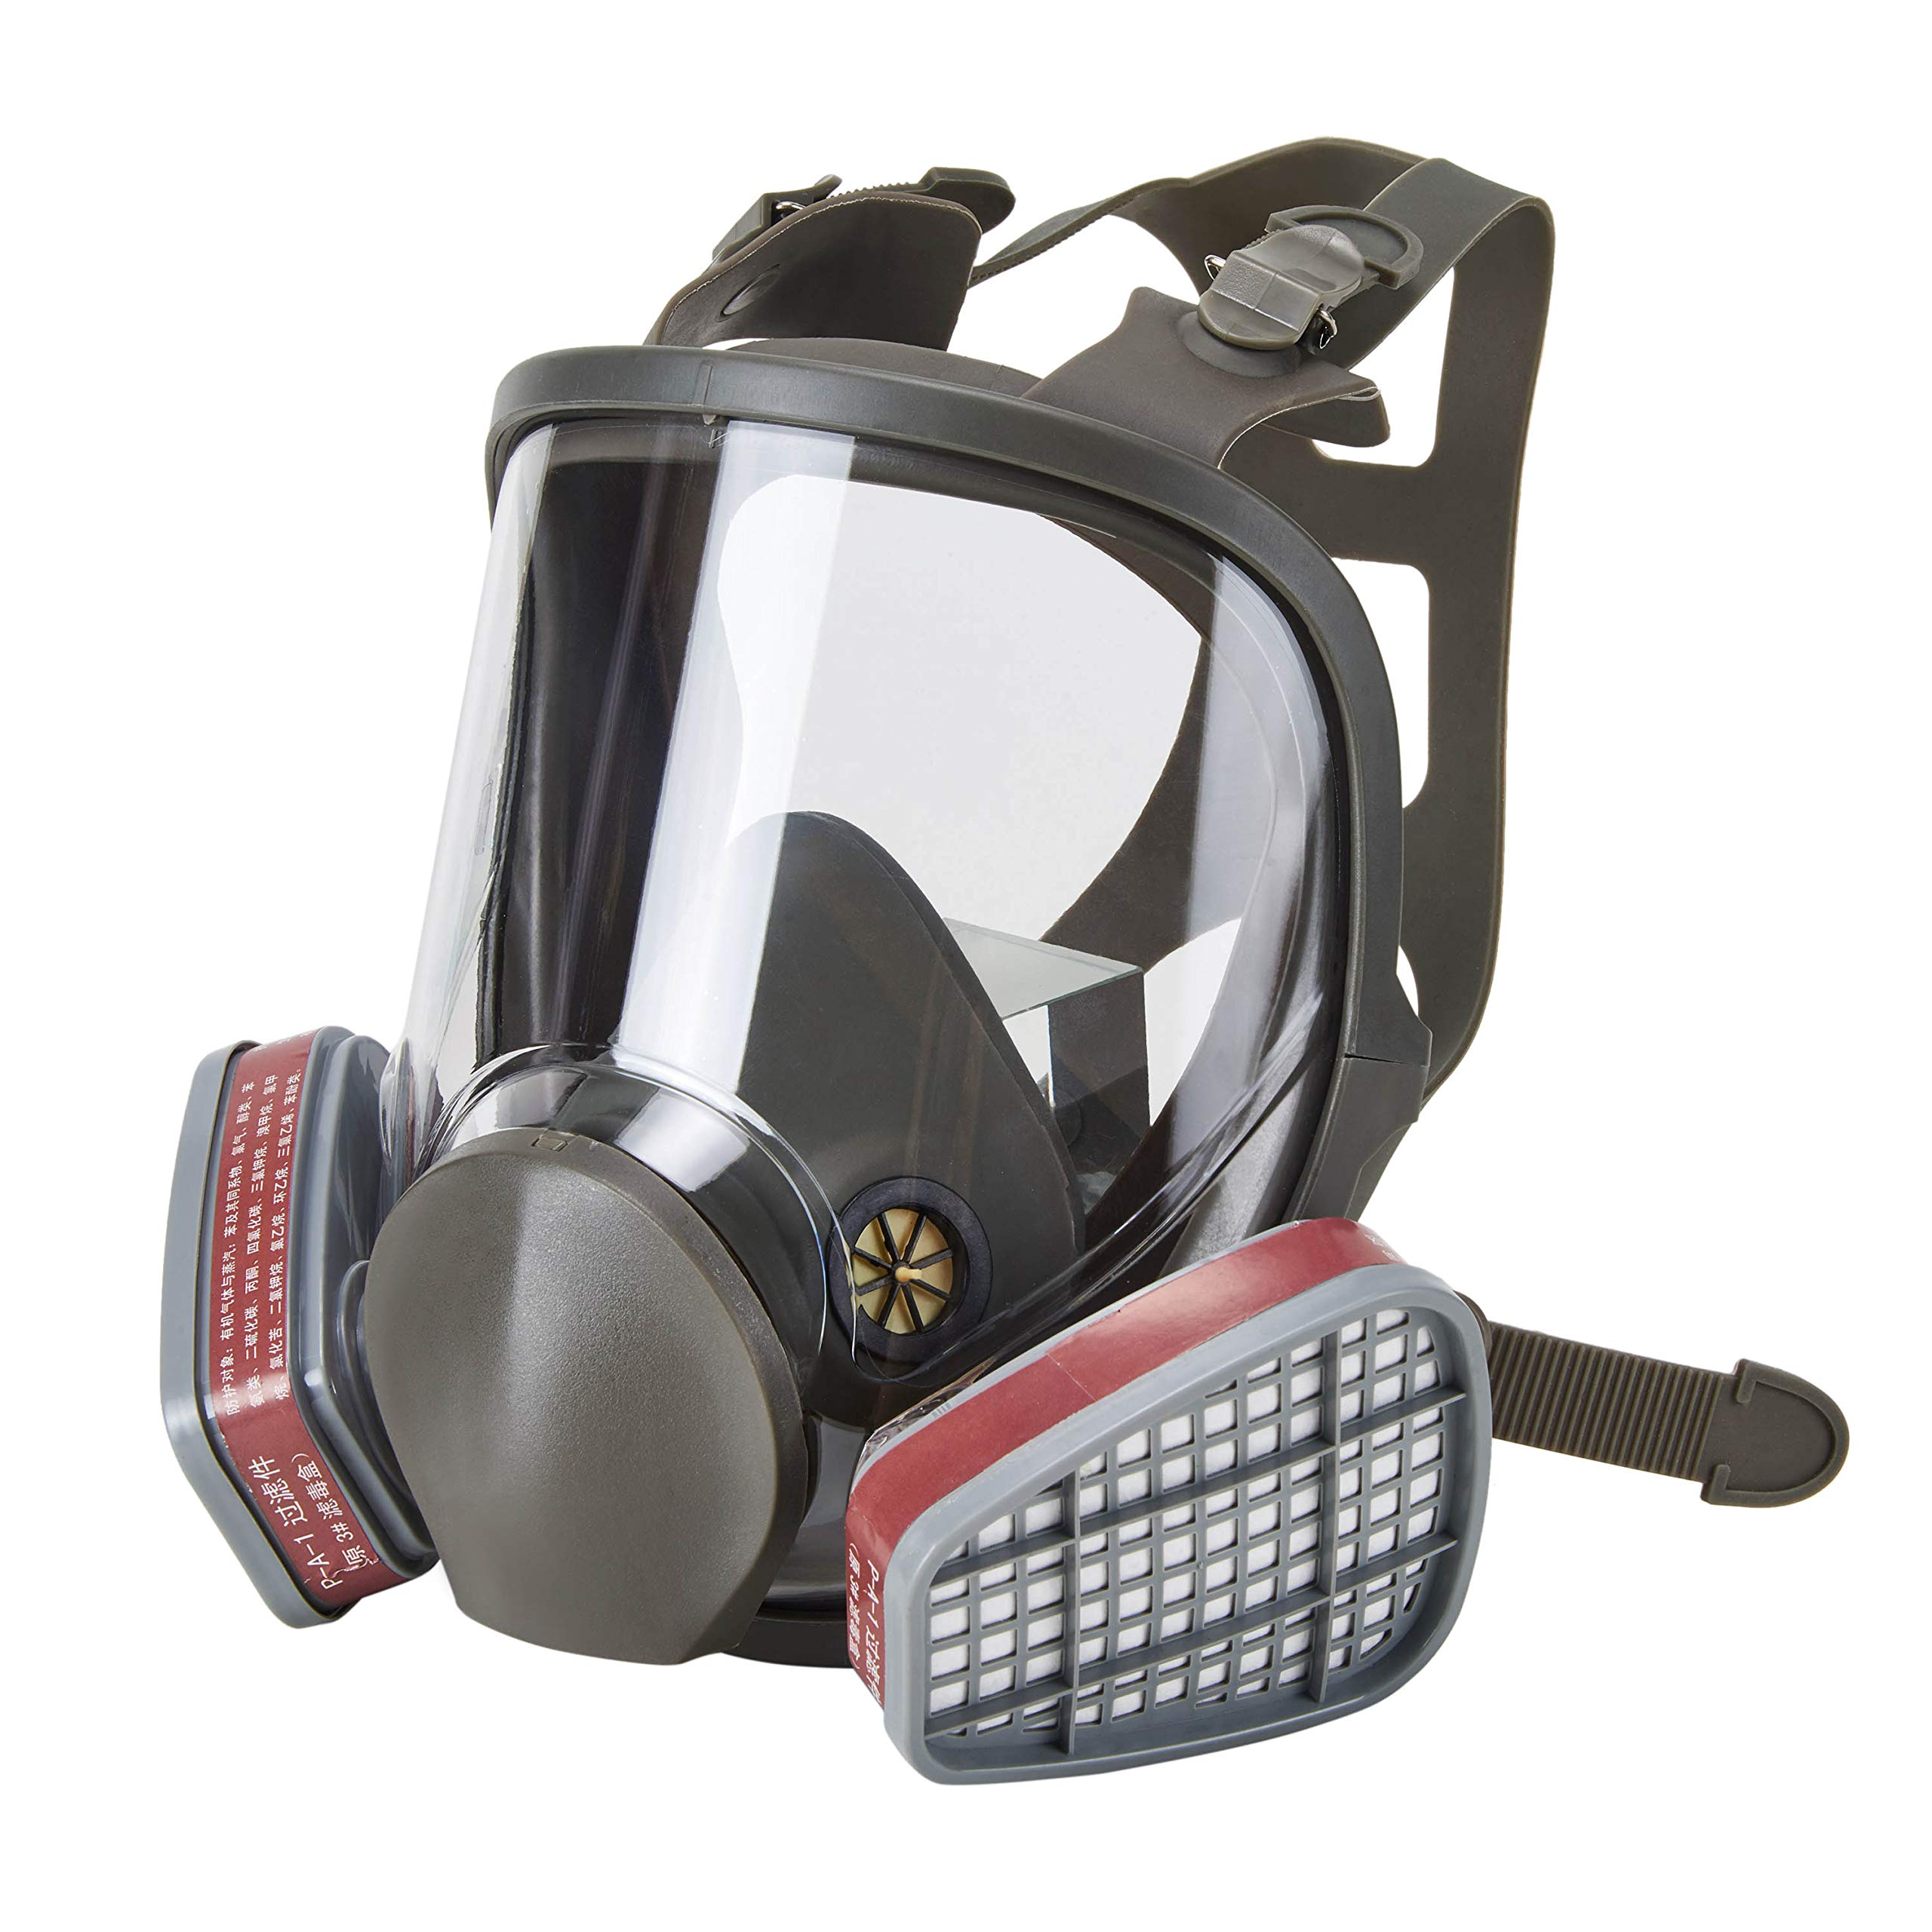 Holulo Full Face Facepiece Respirator Paint Spray Mask with 2 x Organic Vapor Cartridges by Holulo